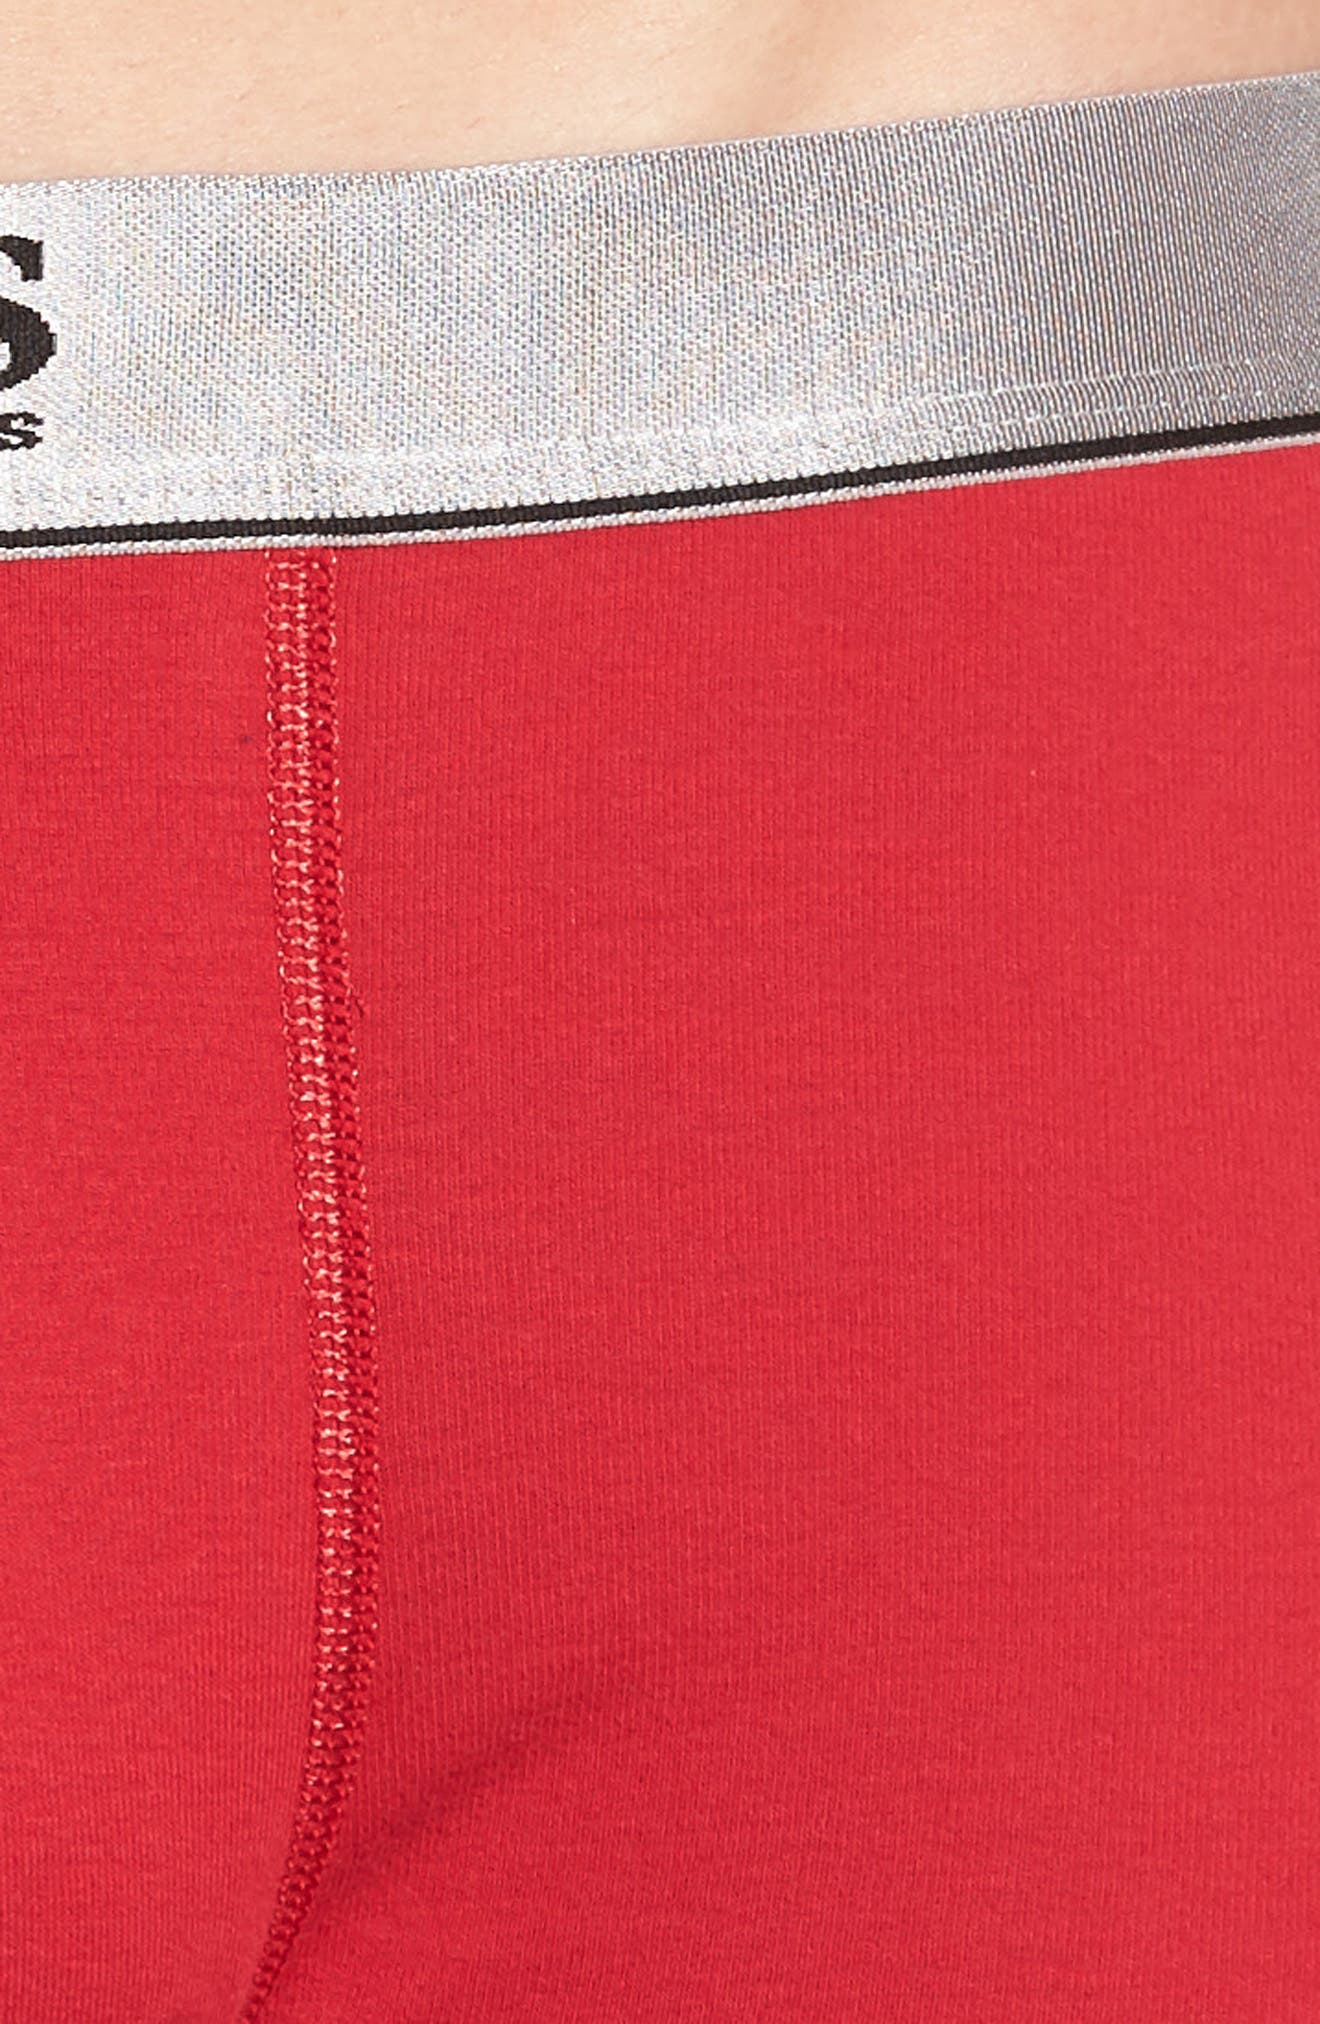 2-Pack Cotton Trunks,                             Alternate thumbnail 5, color,                             RED